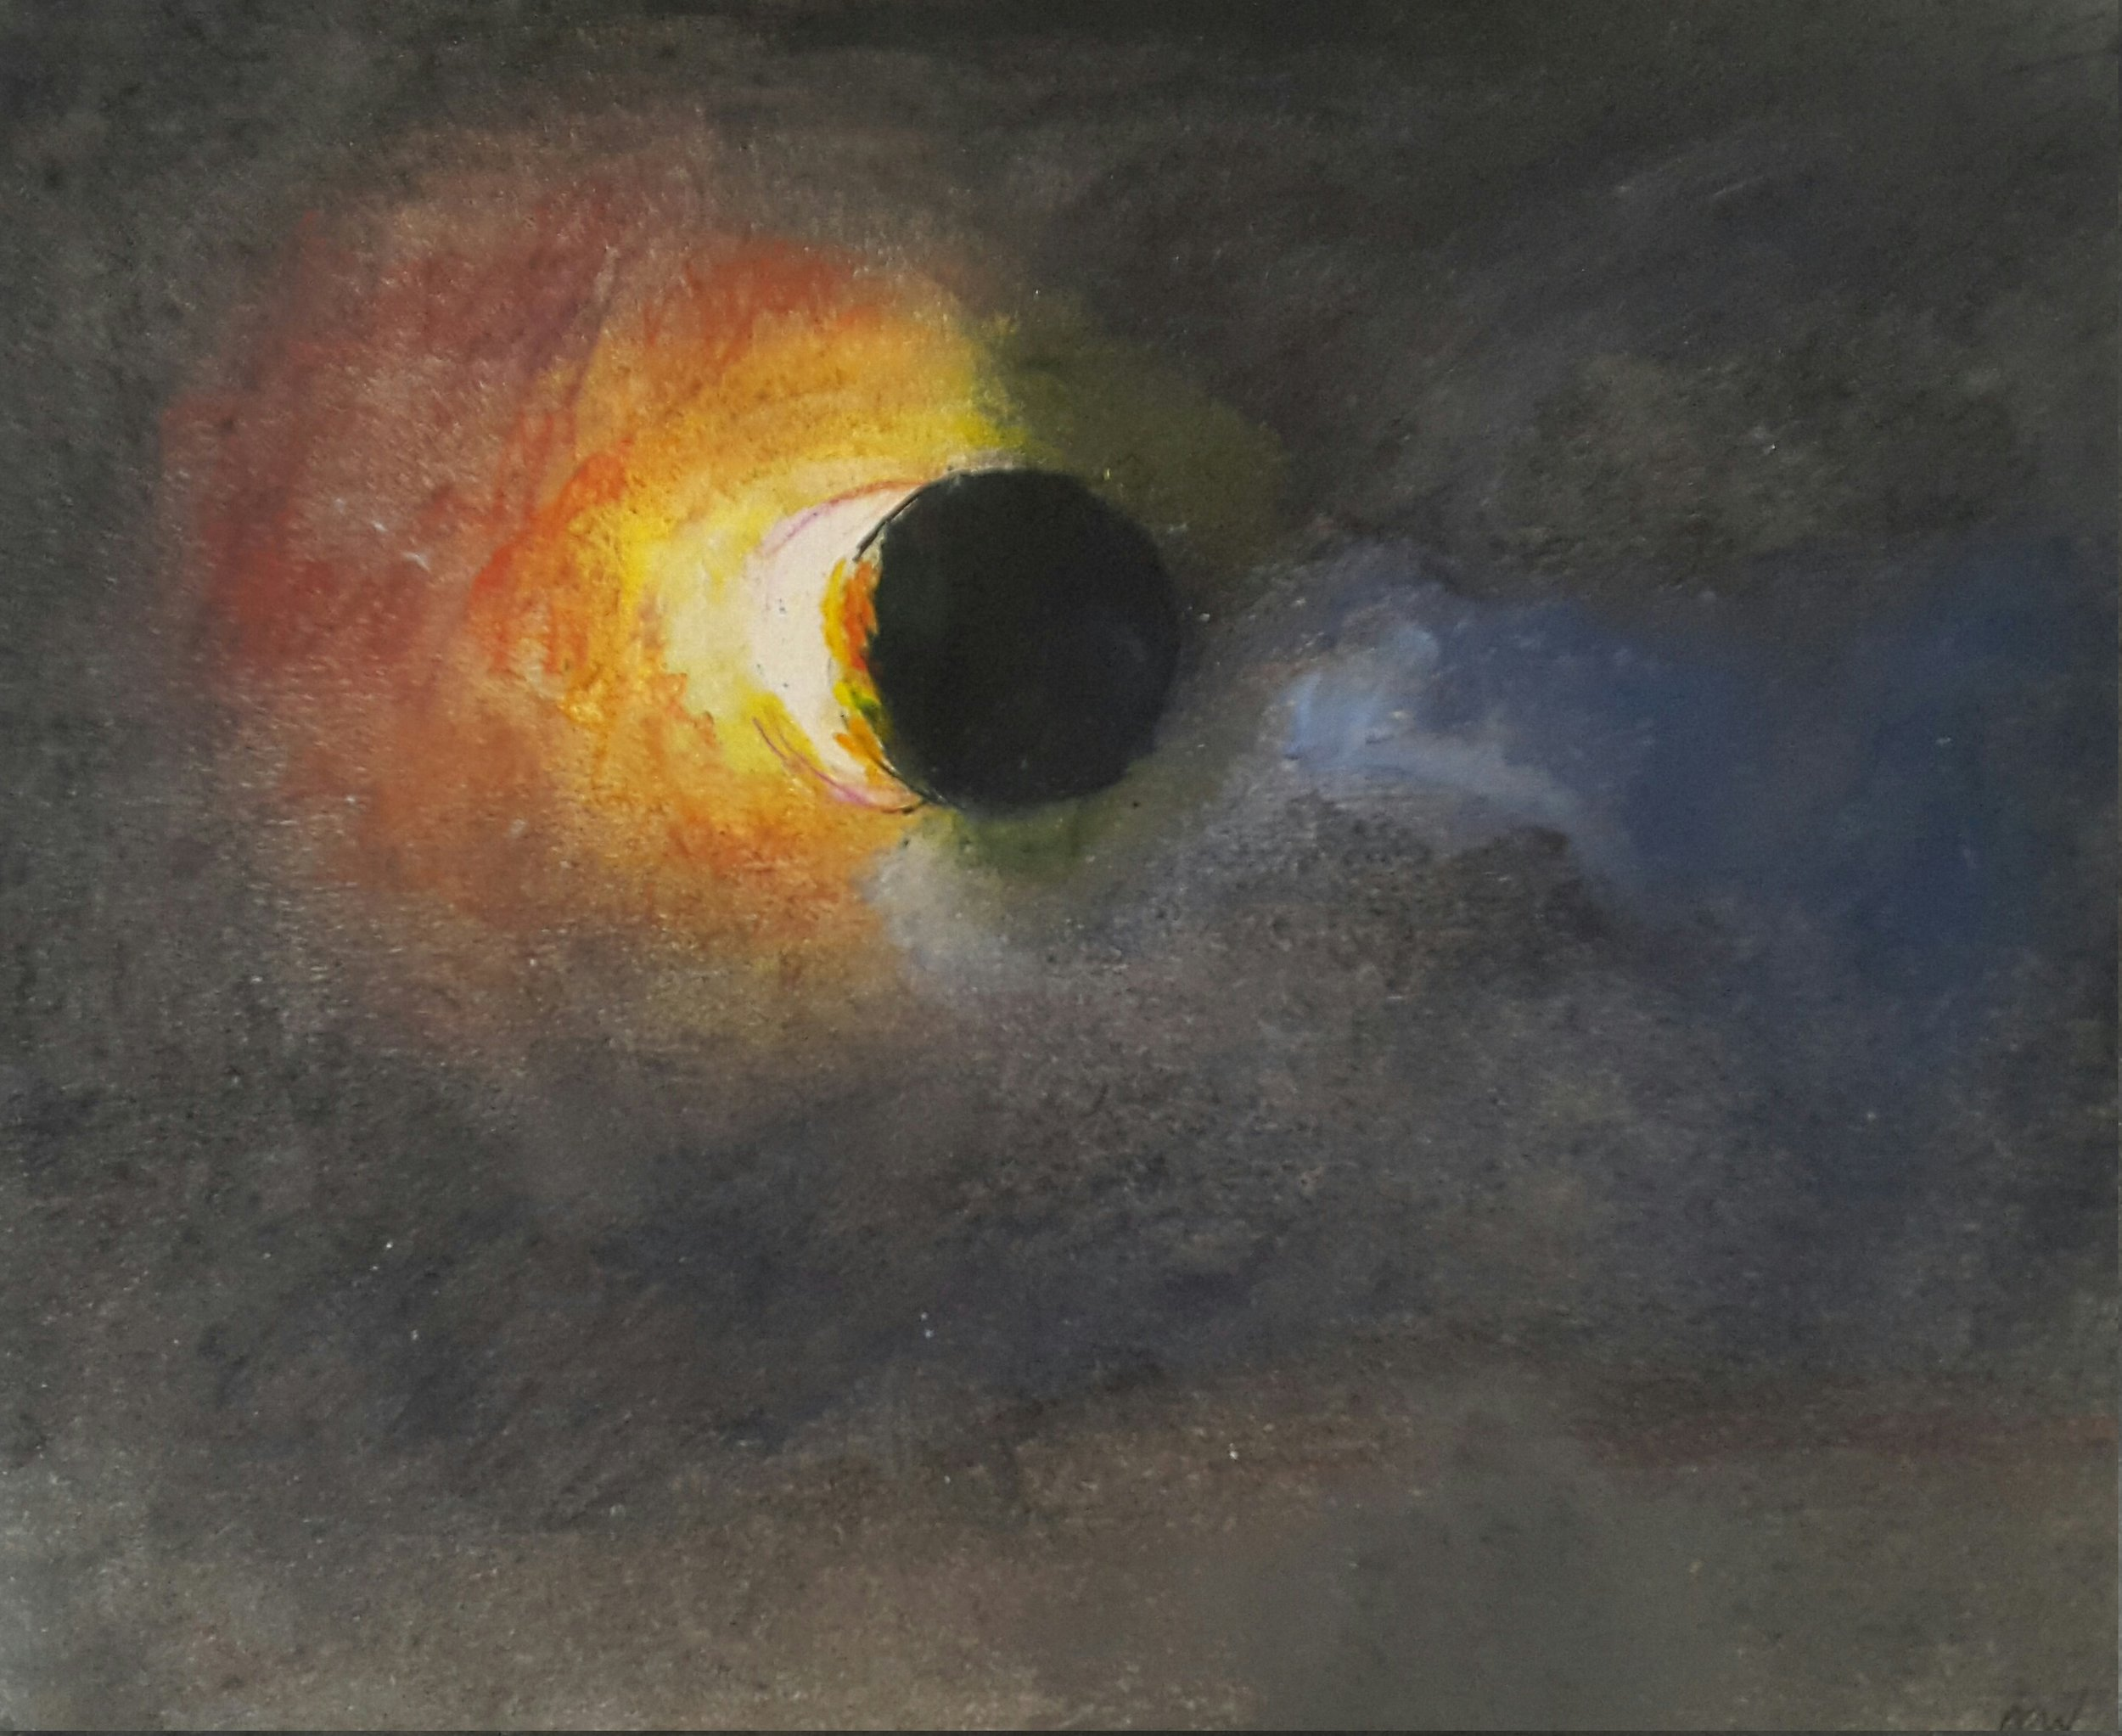 63 Eclipse, 14x15cm, water colour and mixed media on paper